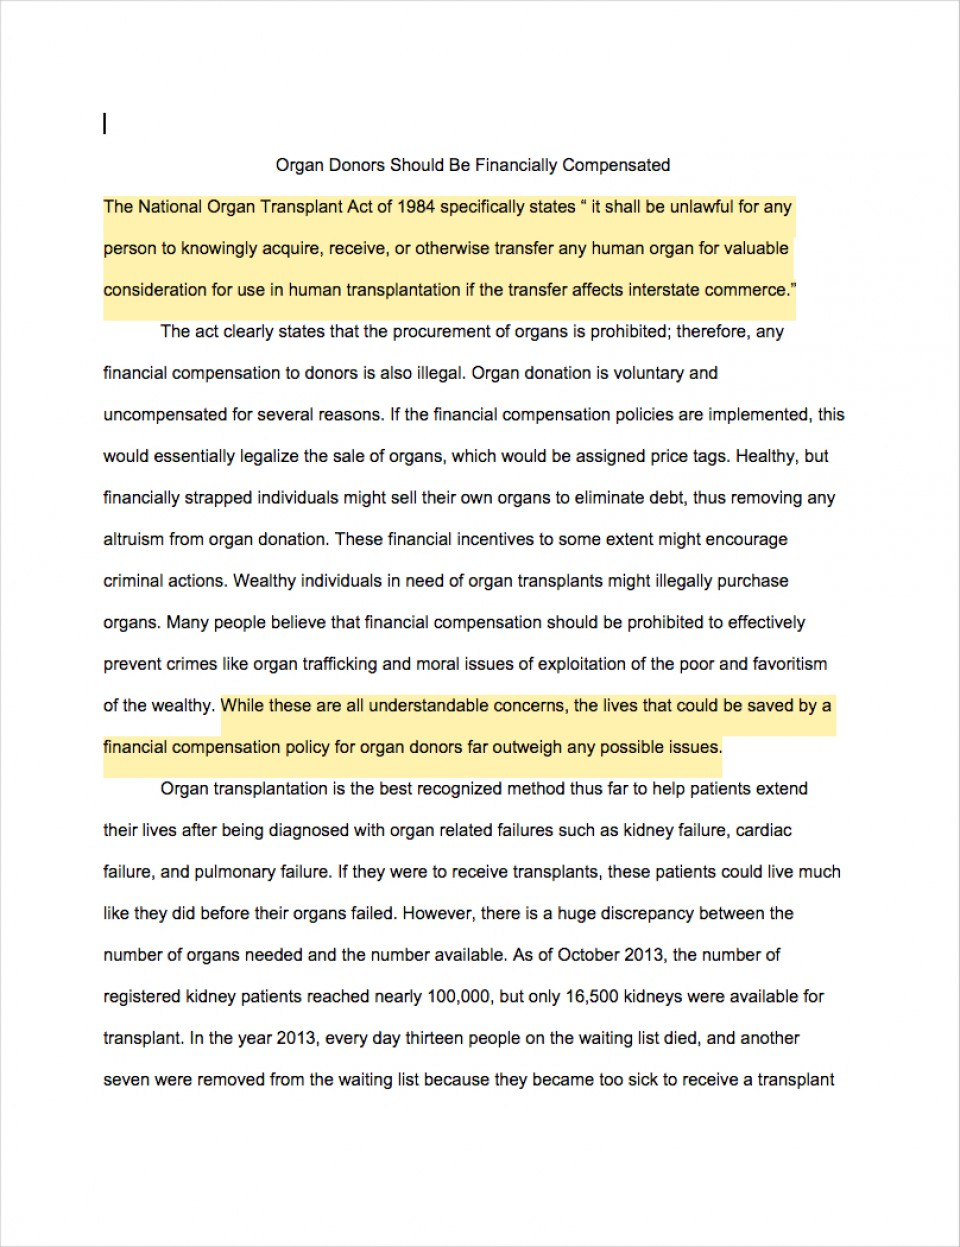 003 Argumentation Essay Example Argumentative Examples Organ Donors Should Financially Compensated Dreaded Conclusion Sentence Starters Introduction Format 9th Grade 960